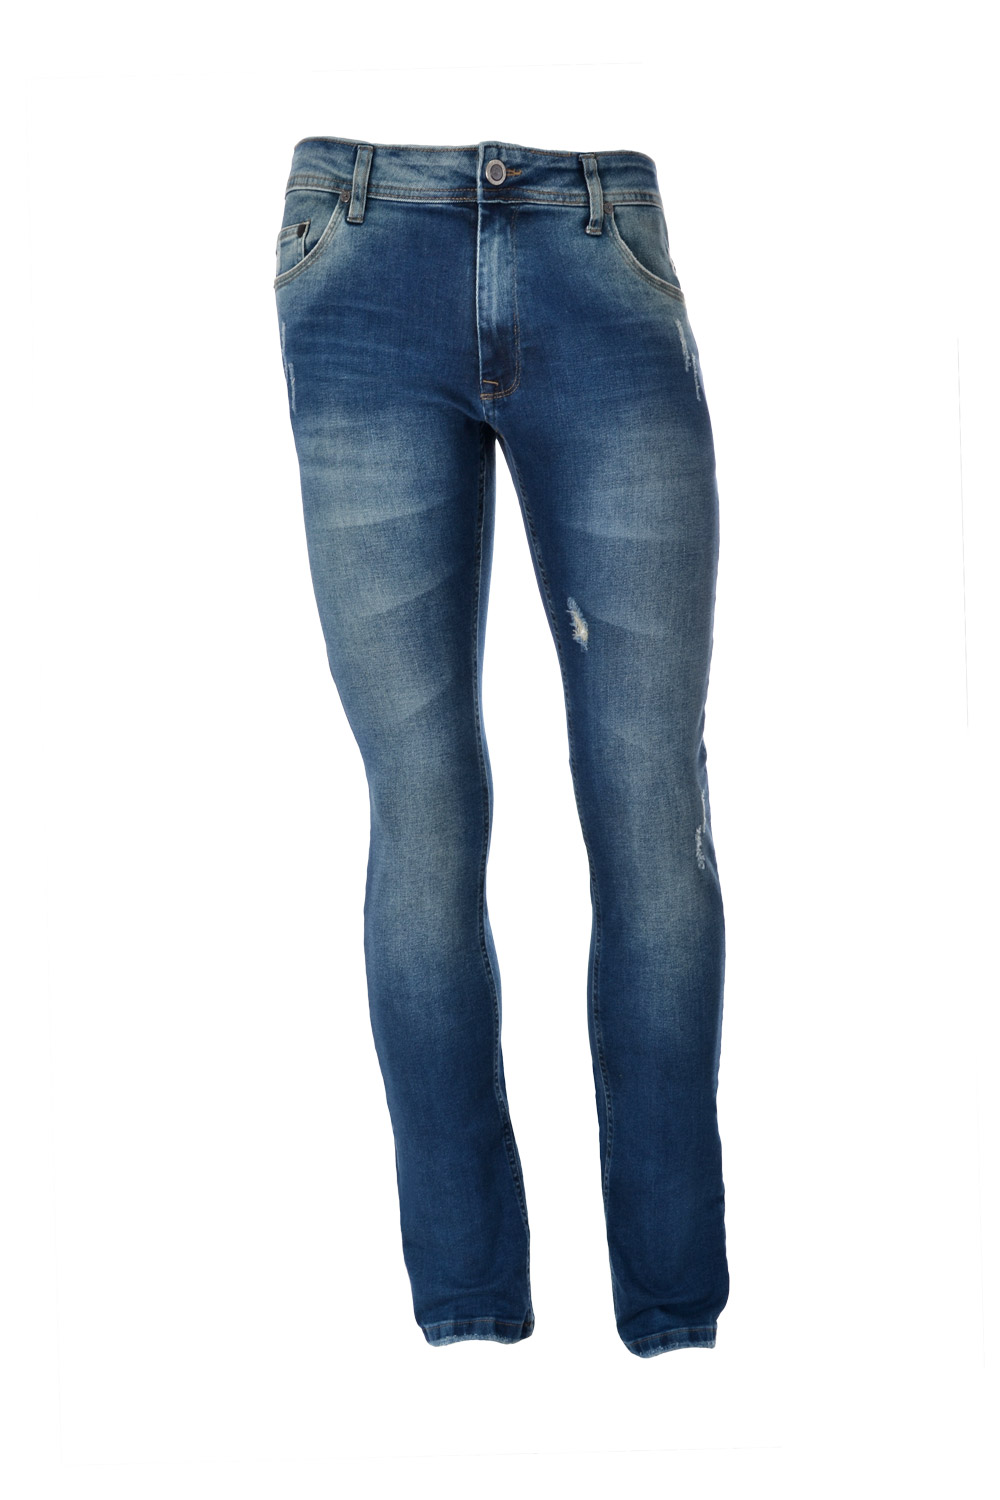 CALÇA JEANS BLUES SLIM ALGODAO & ELASTANO STRETCH STONED AZUL ESCURO